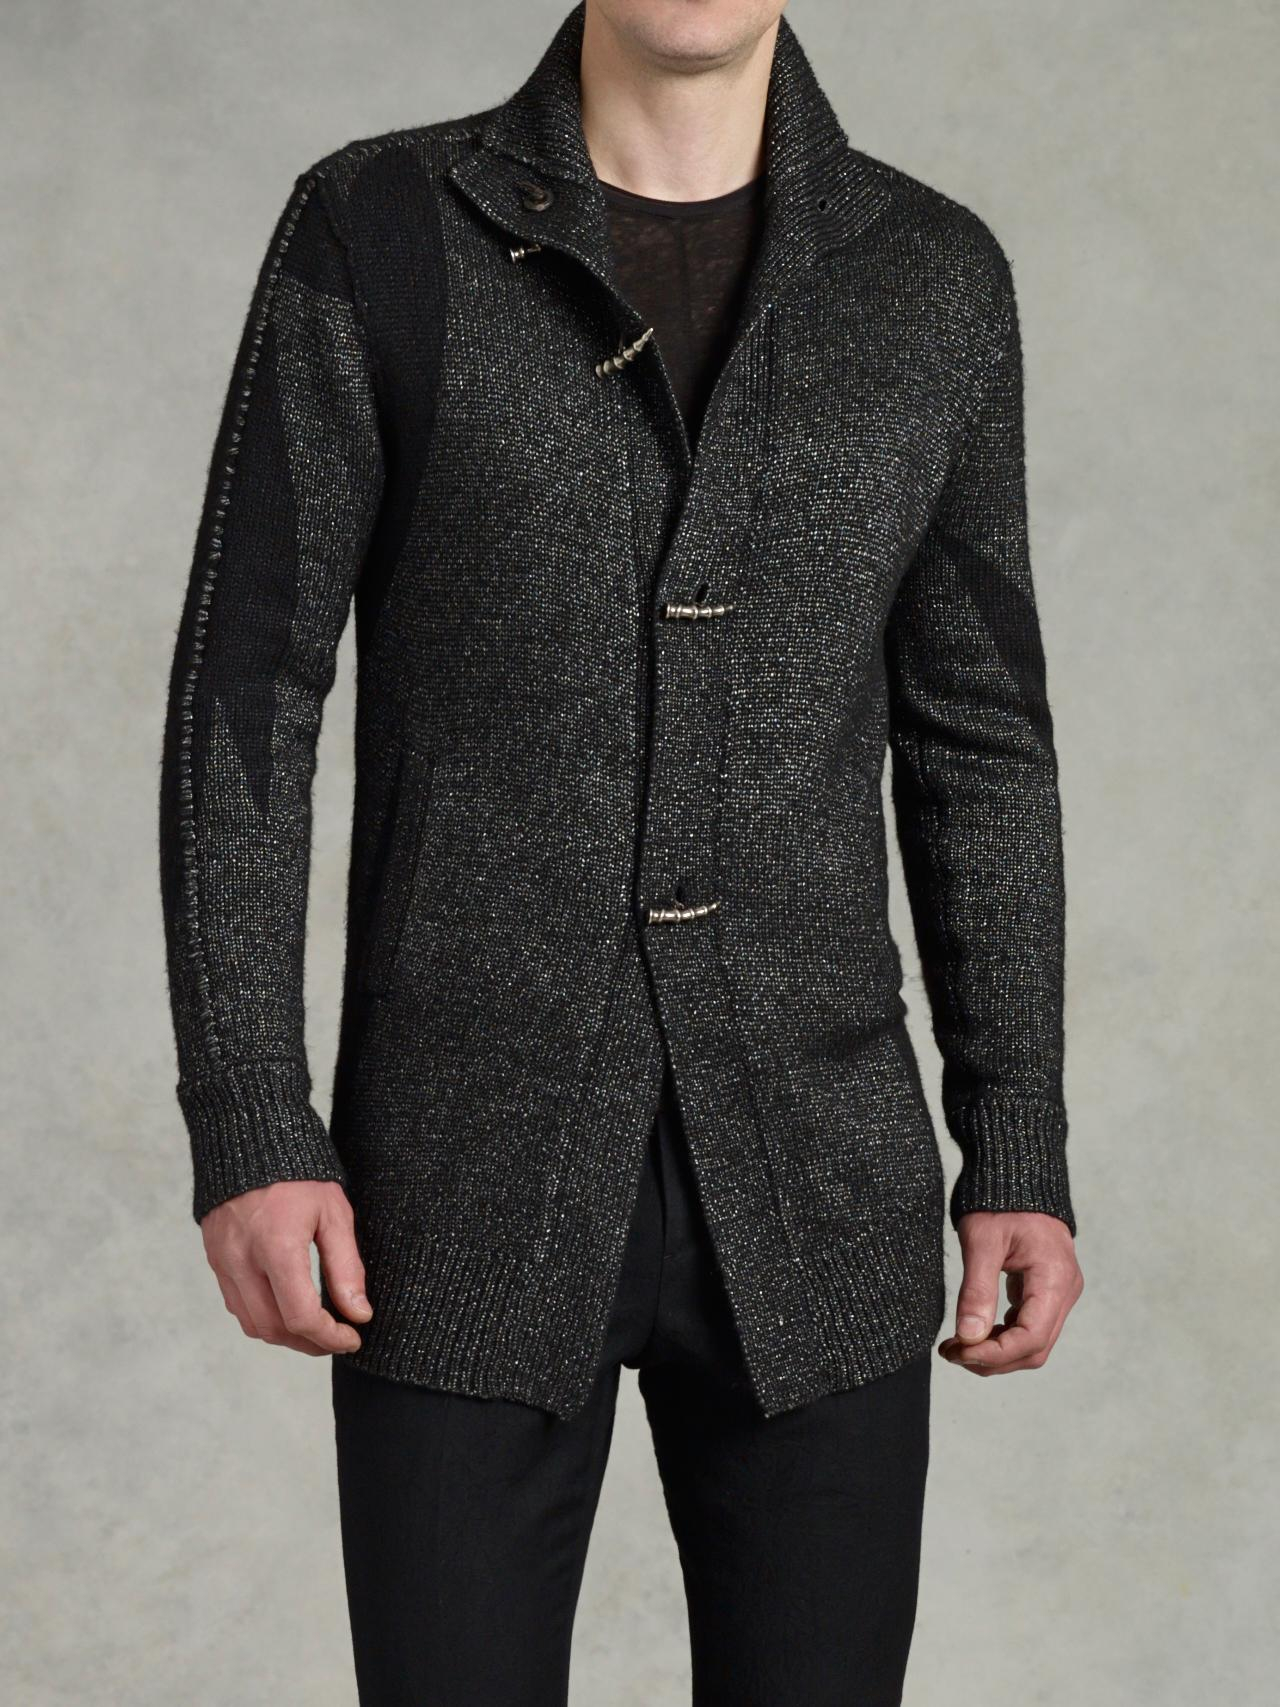 John varvatos Metal Toggle Sweater Coat in Black for Men | Lyst